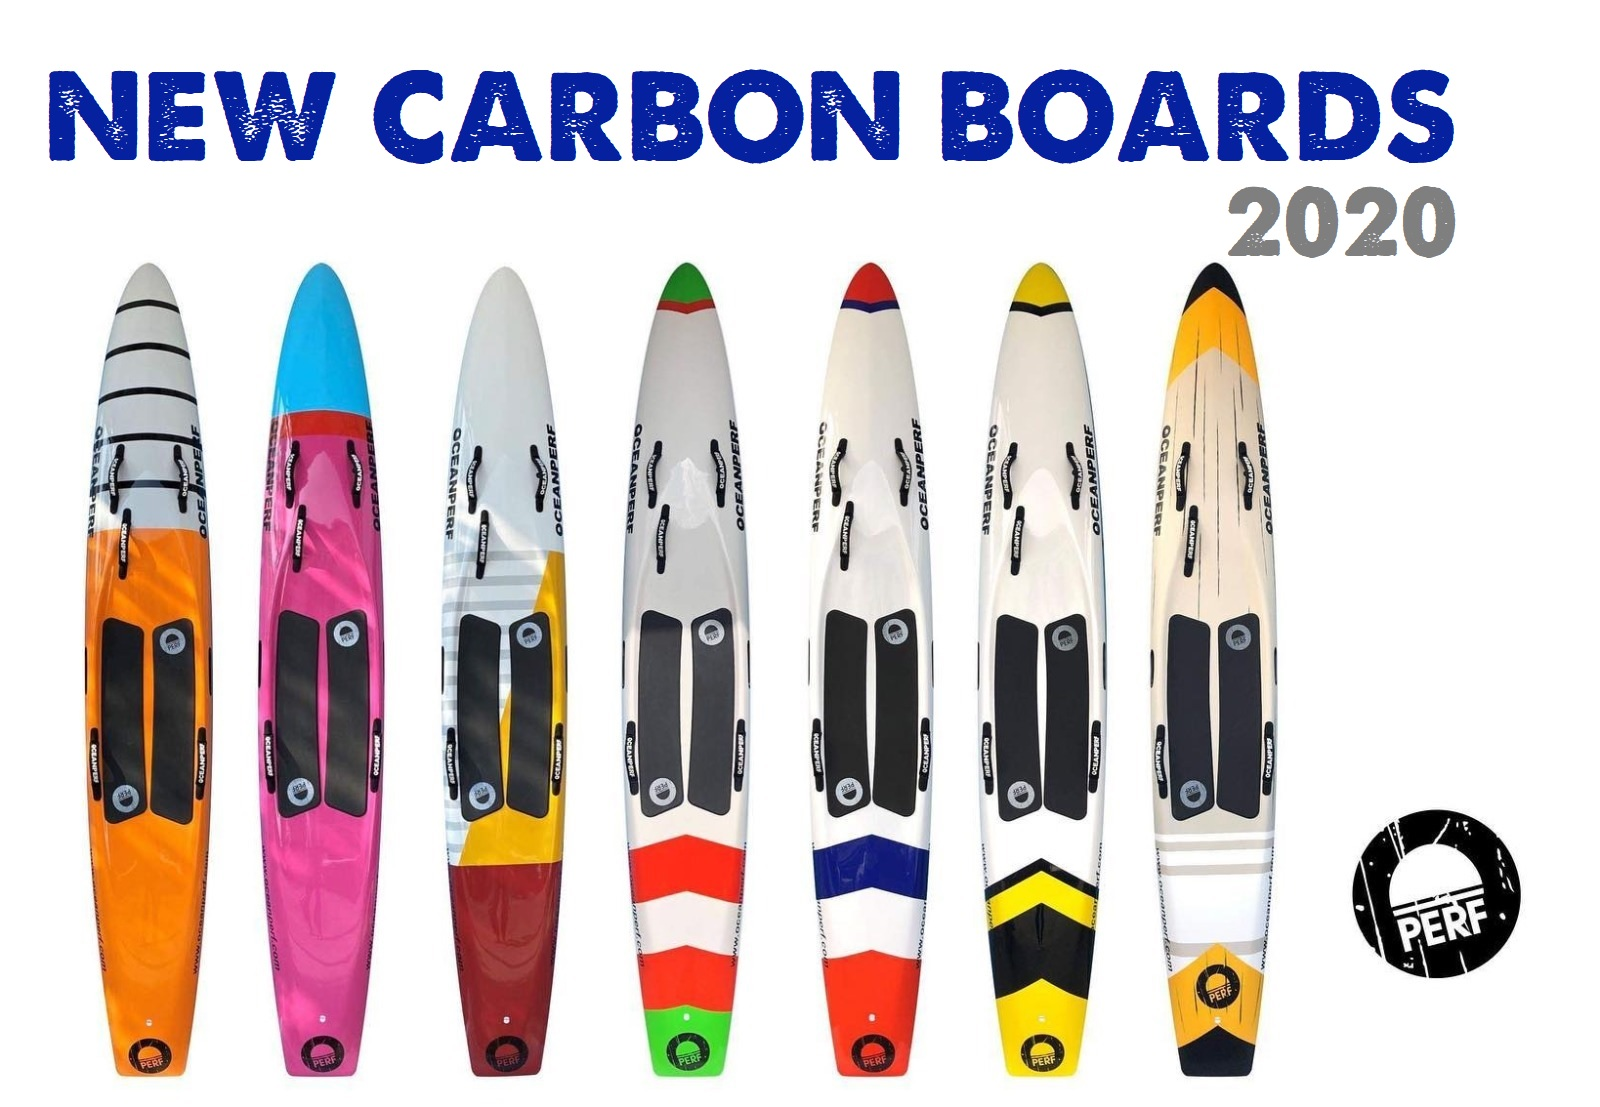 oceanperf boards 2020